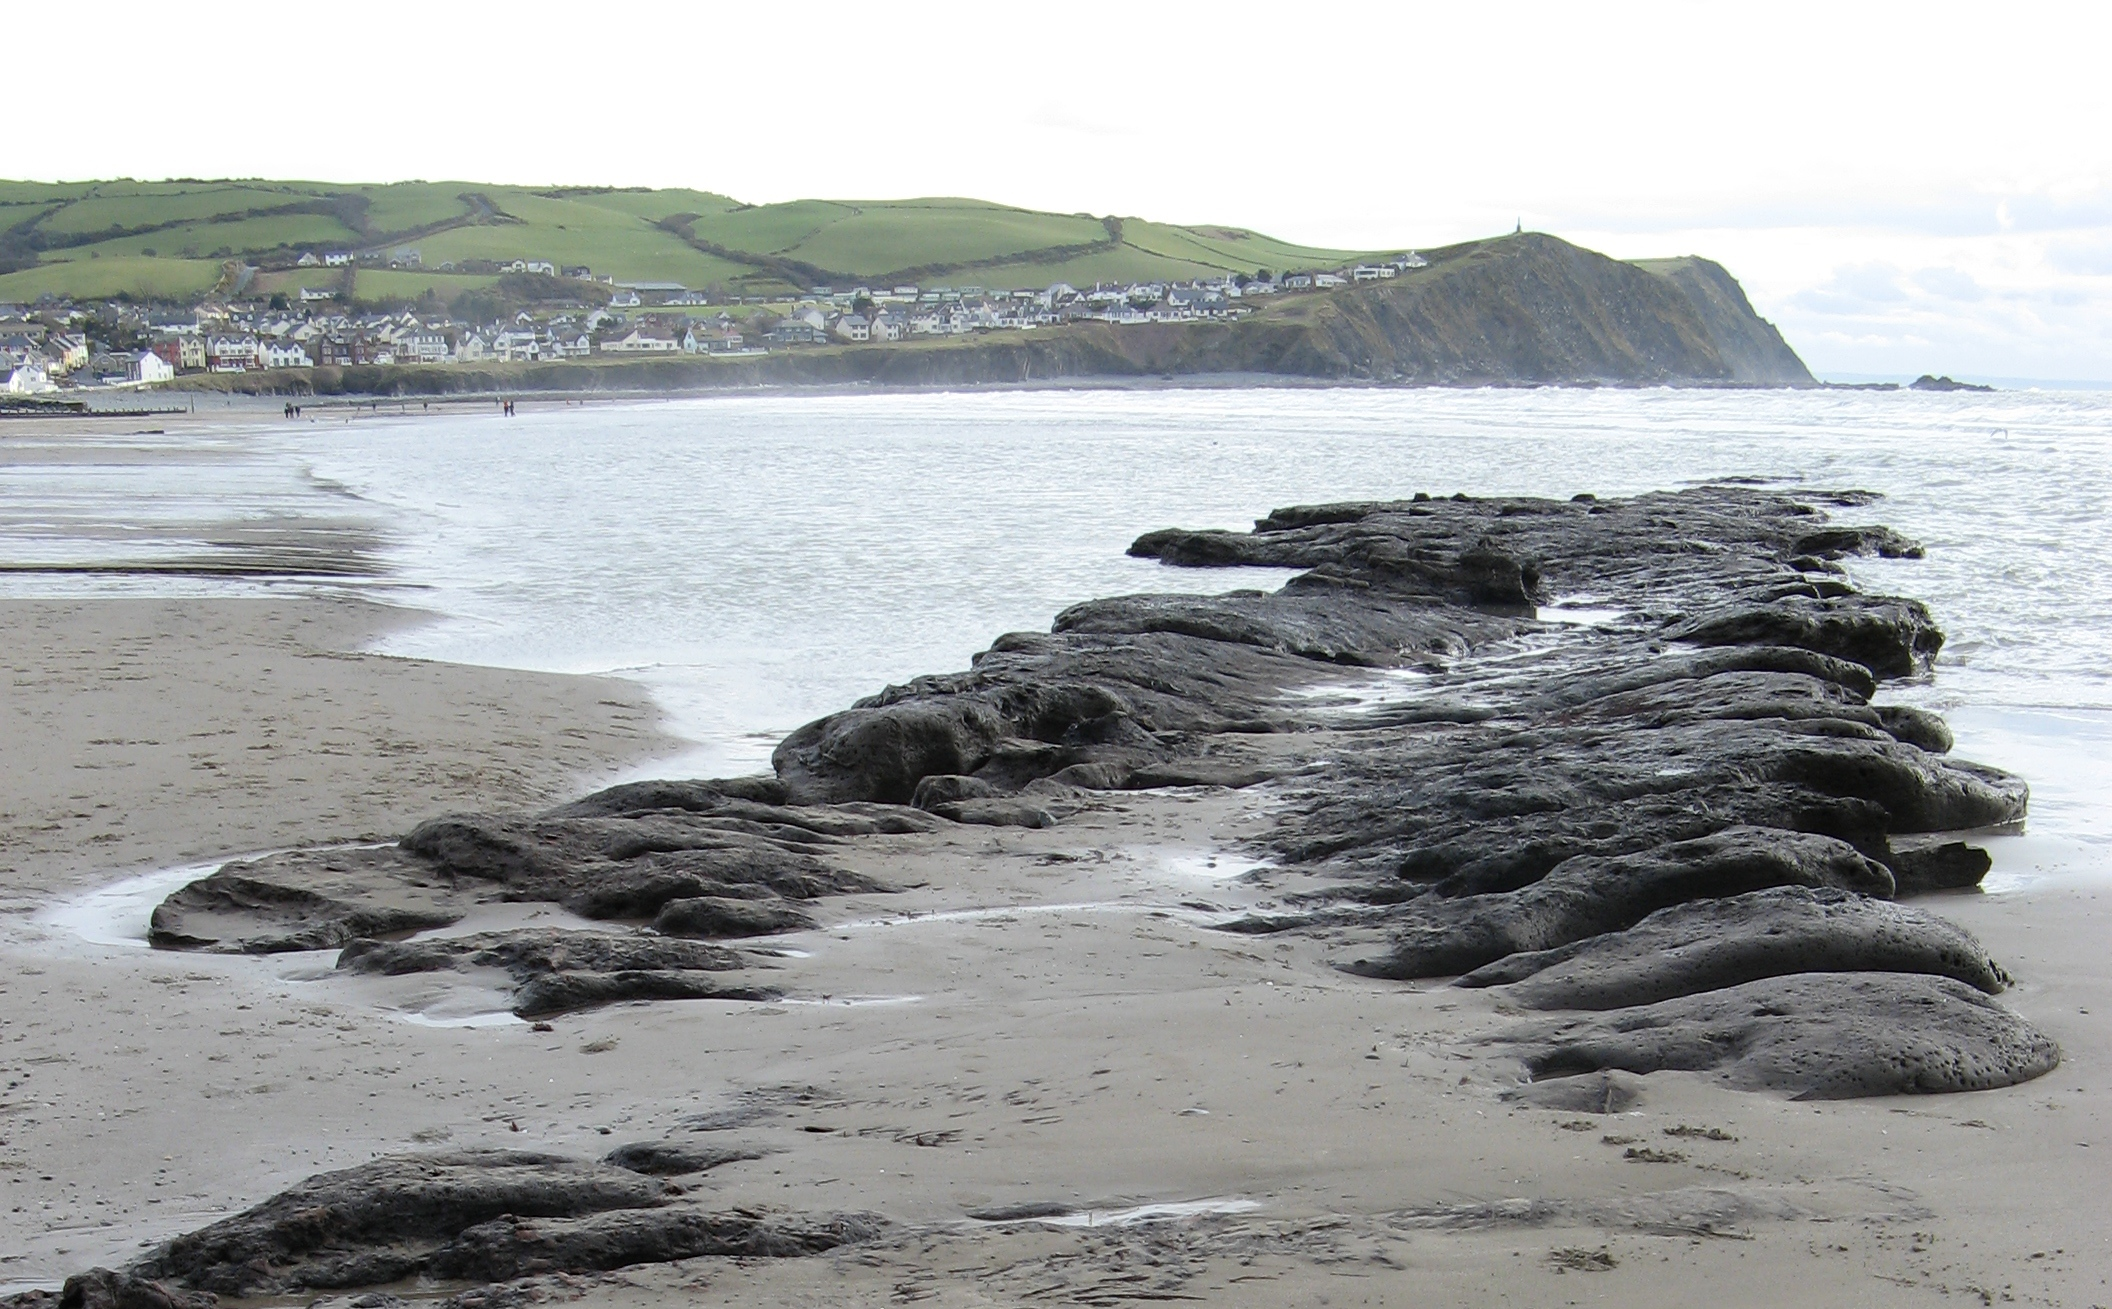 The remains of Borth Beach forest photographed in 2008. Image Source: Wikimedia Commons